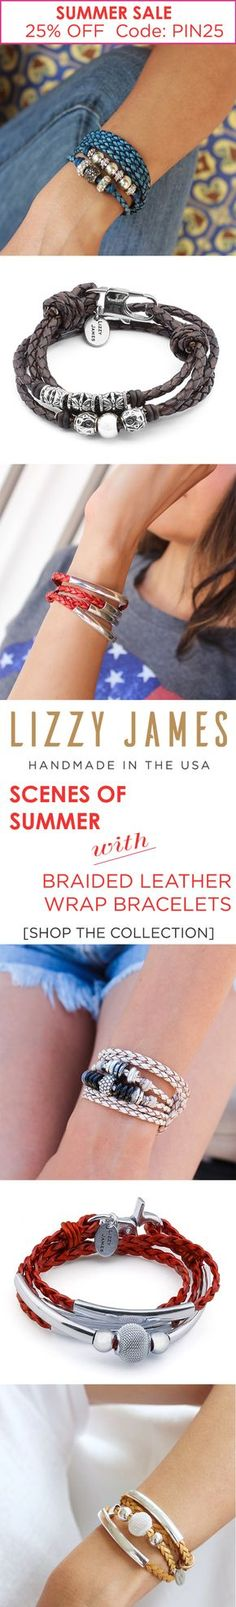 Lizzy James Jewelry's most popular braided leather colors for our most popular wrap bracelet styles! Get 25% OFF with CODE - PIN25 Plus Free Shipping during our Summer Sale. Featuring the colored braided leather wrap bracelets that can be worn as a choker-style necklace. Handmade in the USA and currently part of our sitewide Lizzy James sale. #MadeInUSA